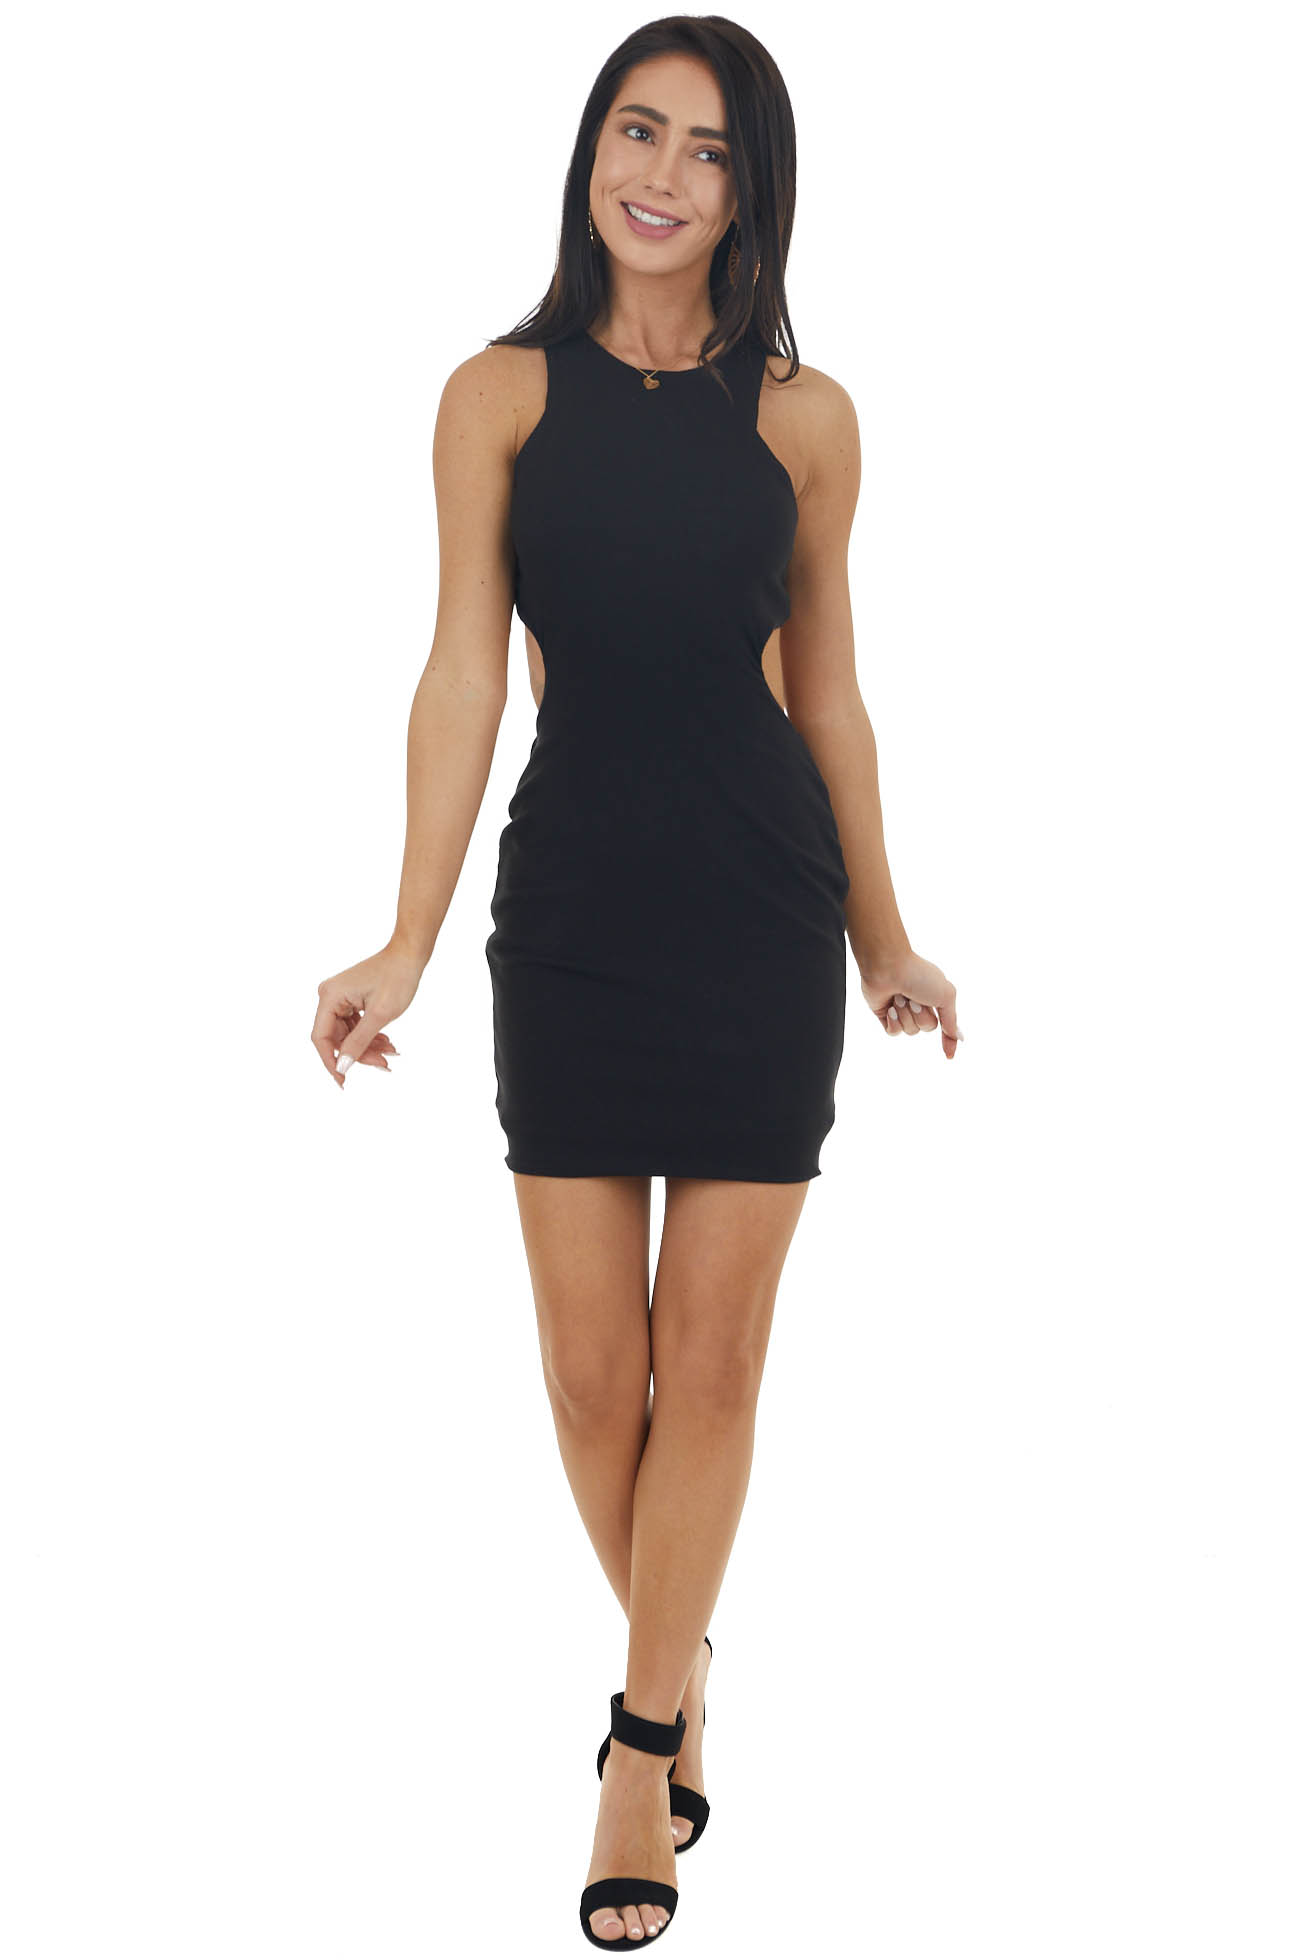 Black Ribbed Knit Open Back Short Dress with Side Cut Out